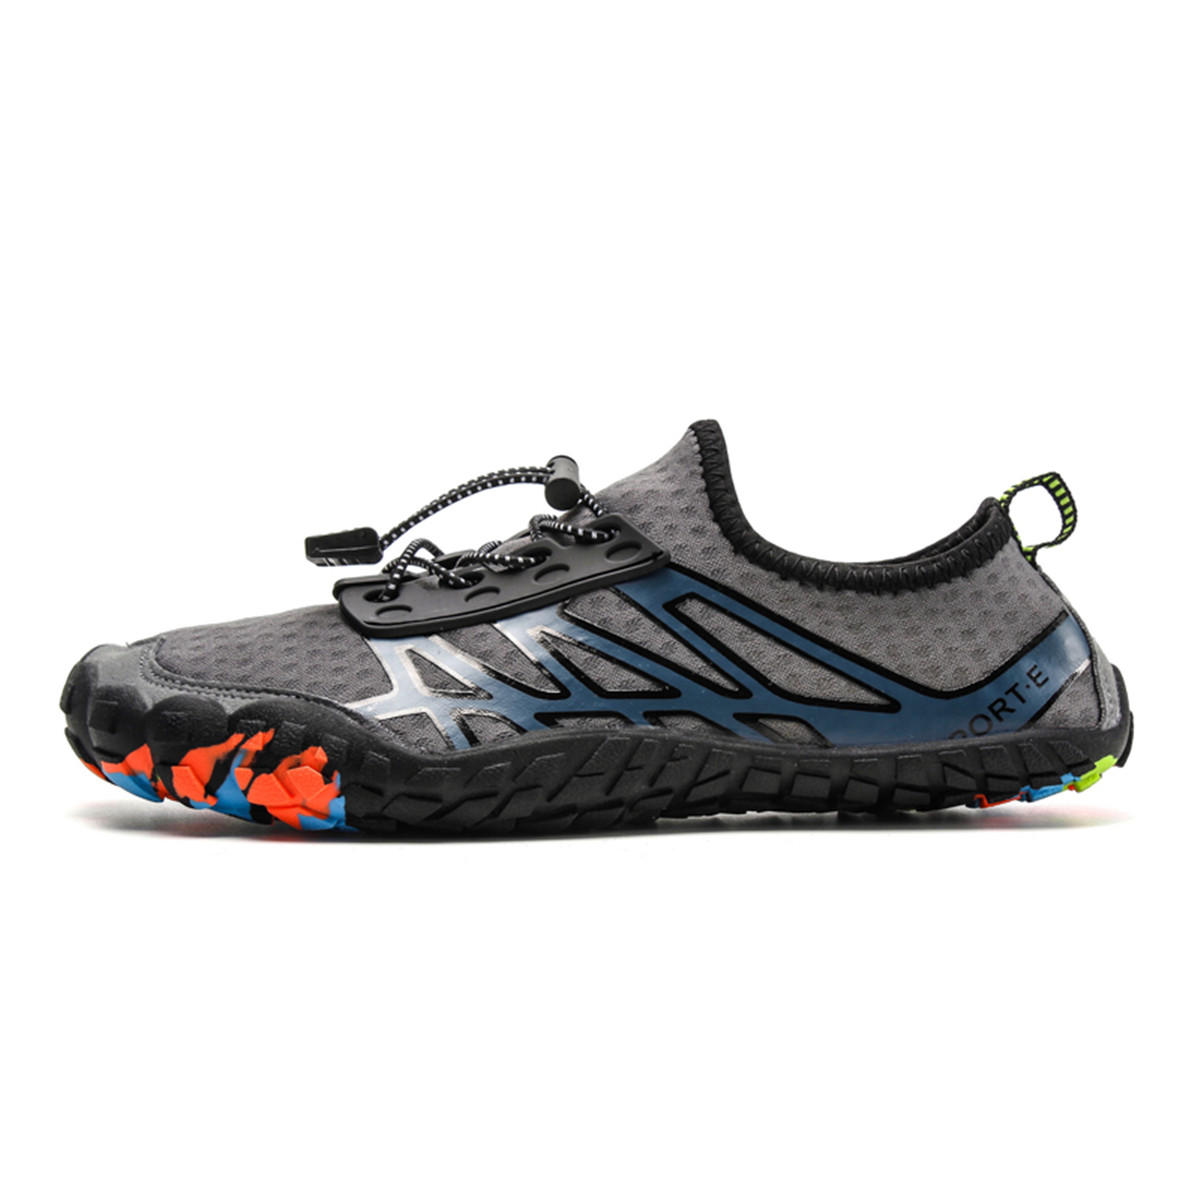 Uni Water Shoes Quick Qrying Sports Surfing Yoga Fitness Running Walking Beach Sneakers